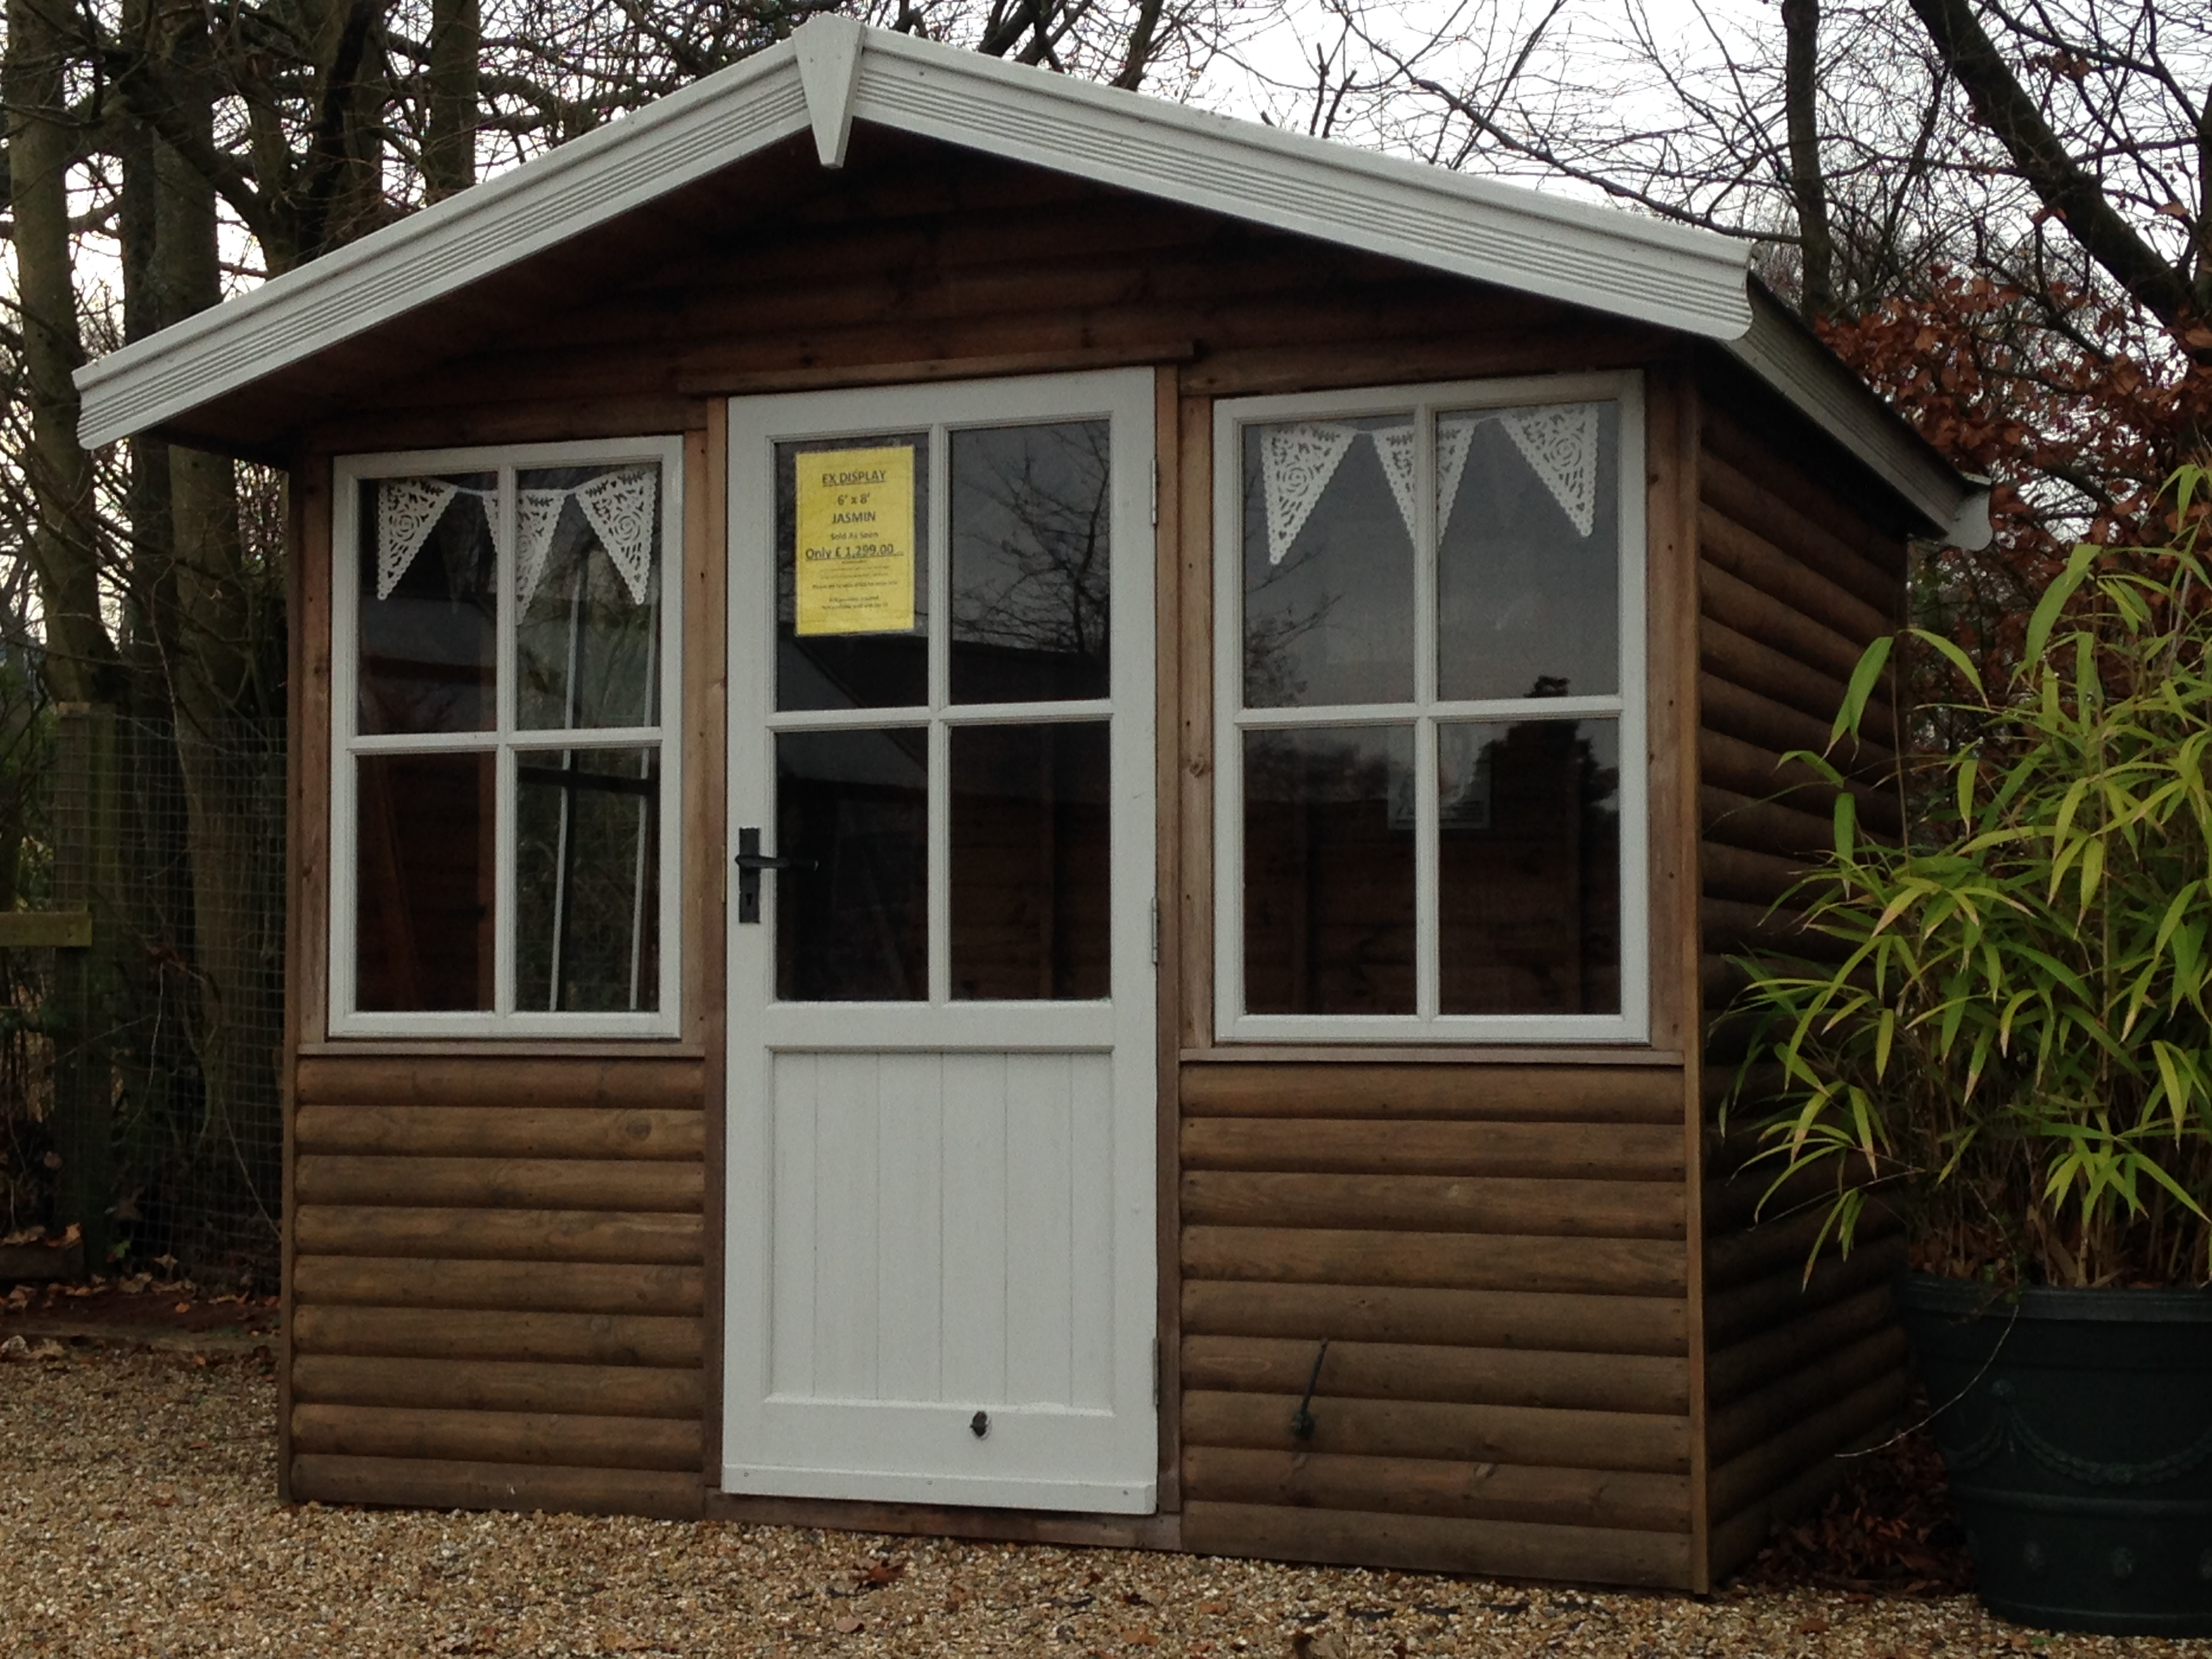 "<p id=""boldtitle"">Ex Display</p>6' x 8' Jasmin In loglap cladding and felt tiled roof<br/>£ 1299.00 inc vat."